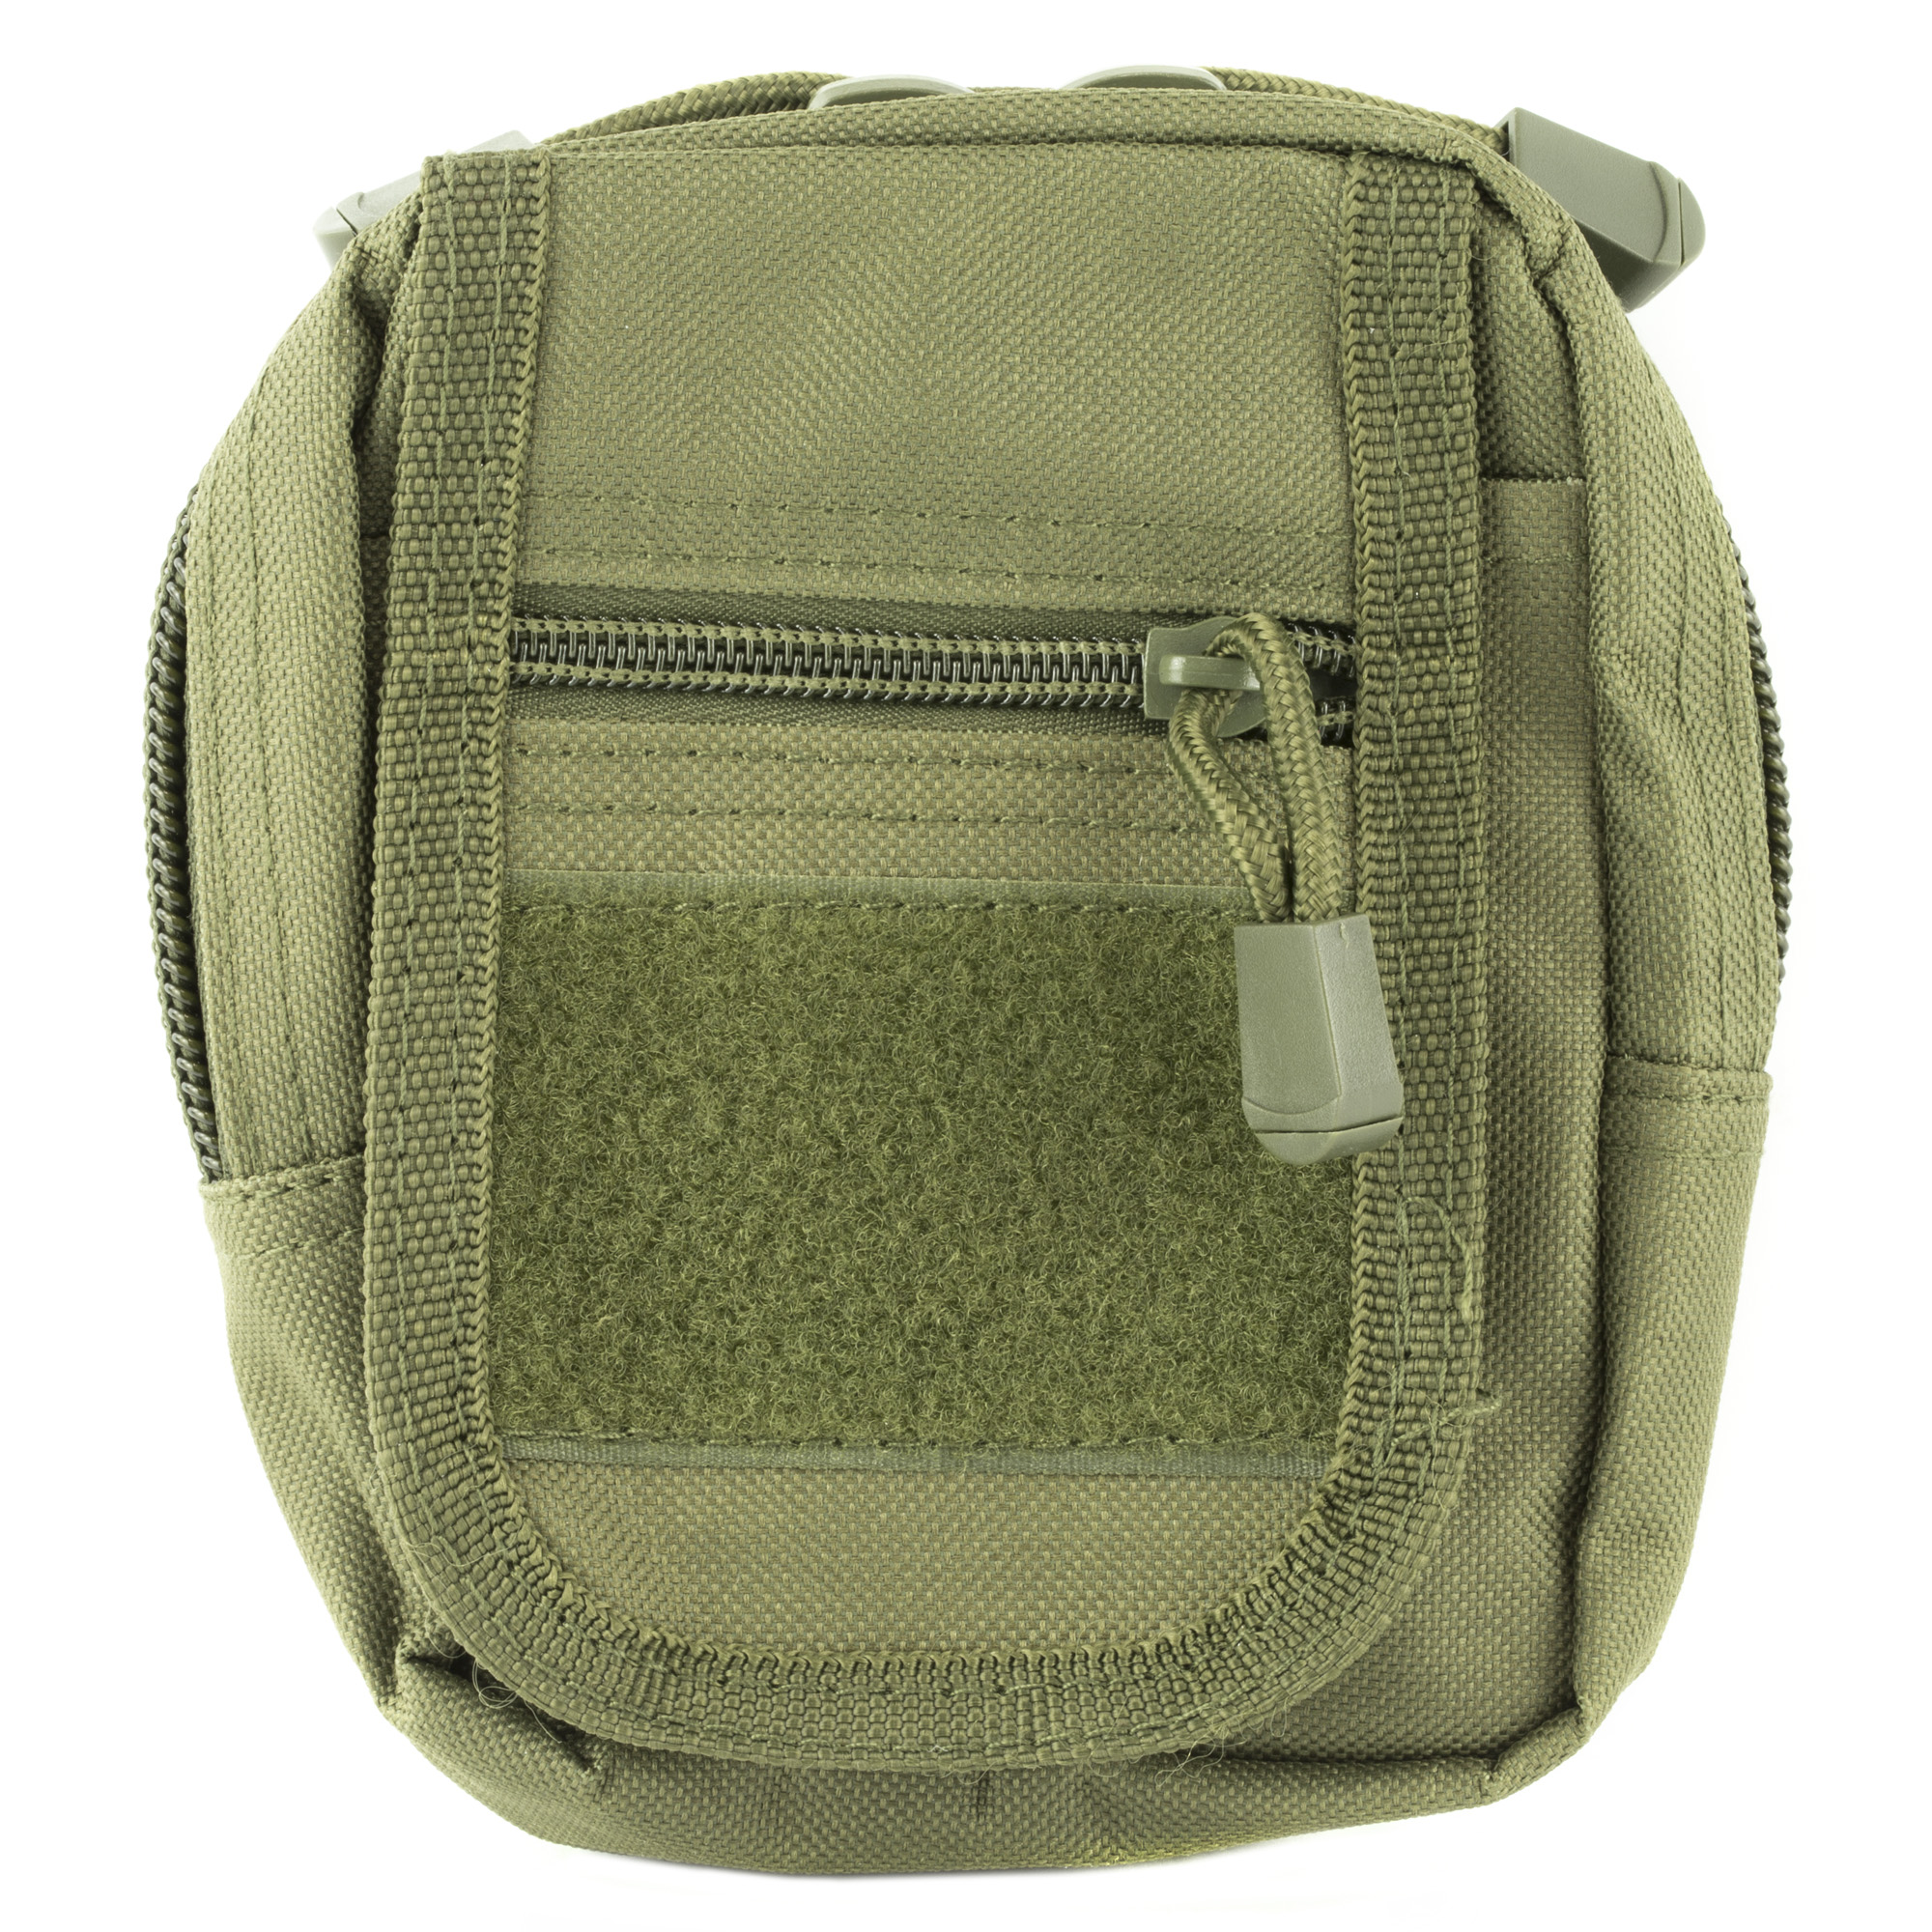 NCSTAR Small Utility Pouch Nylon – Green